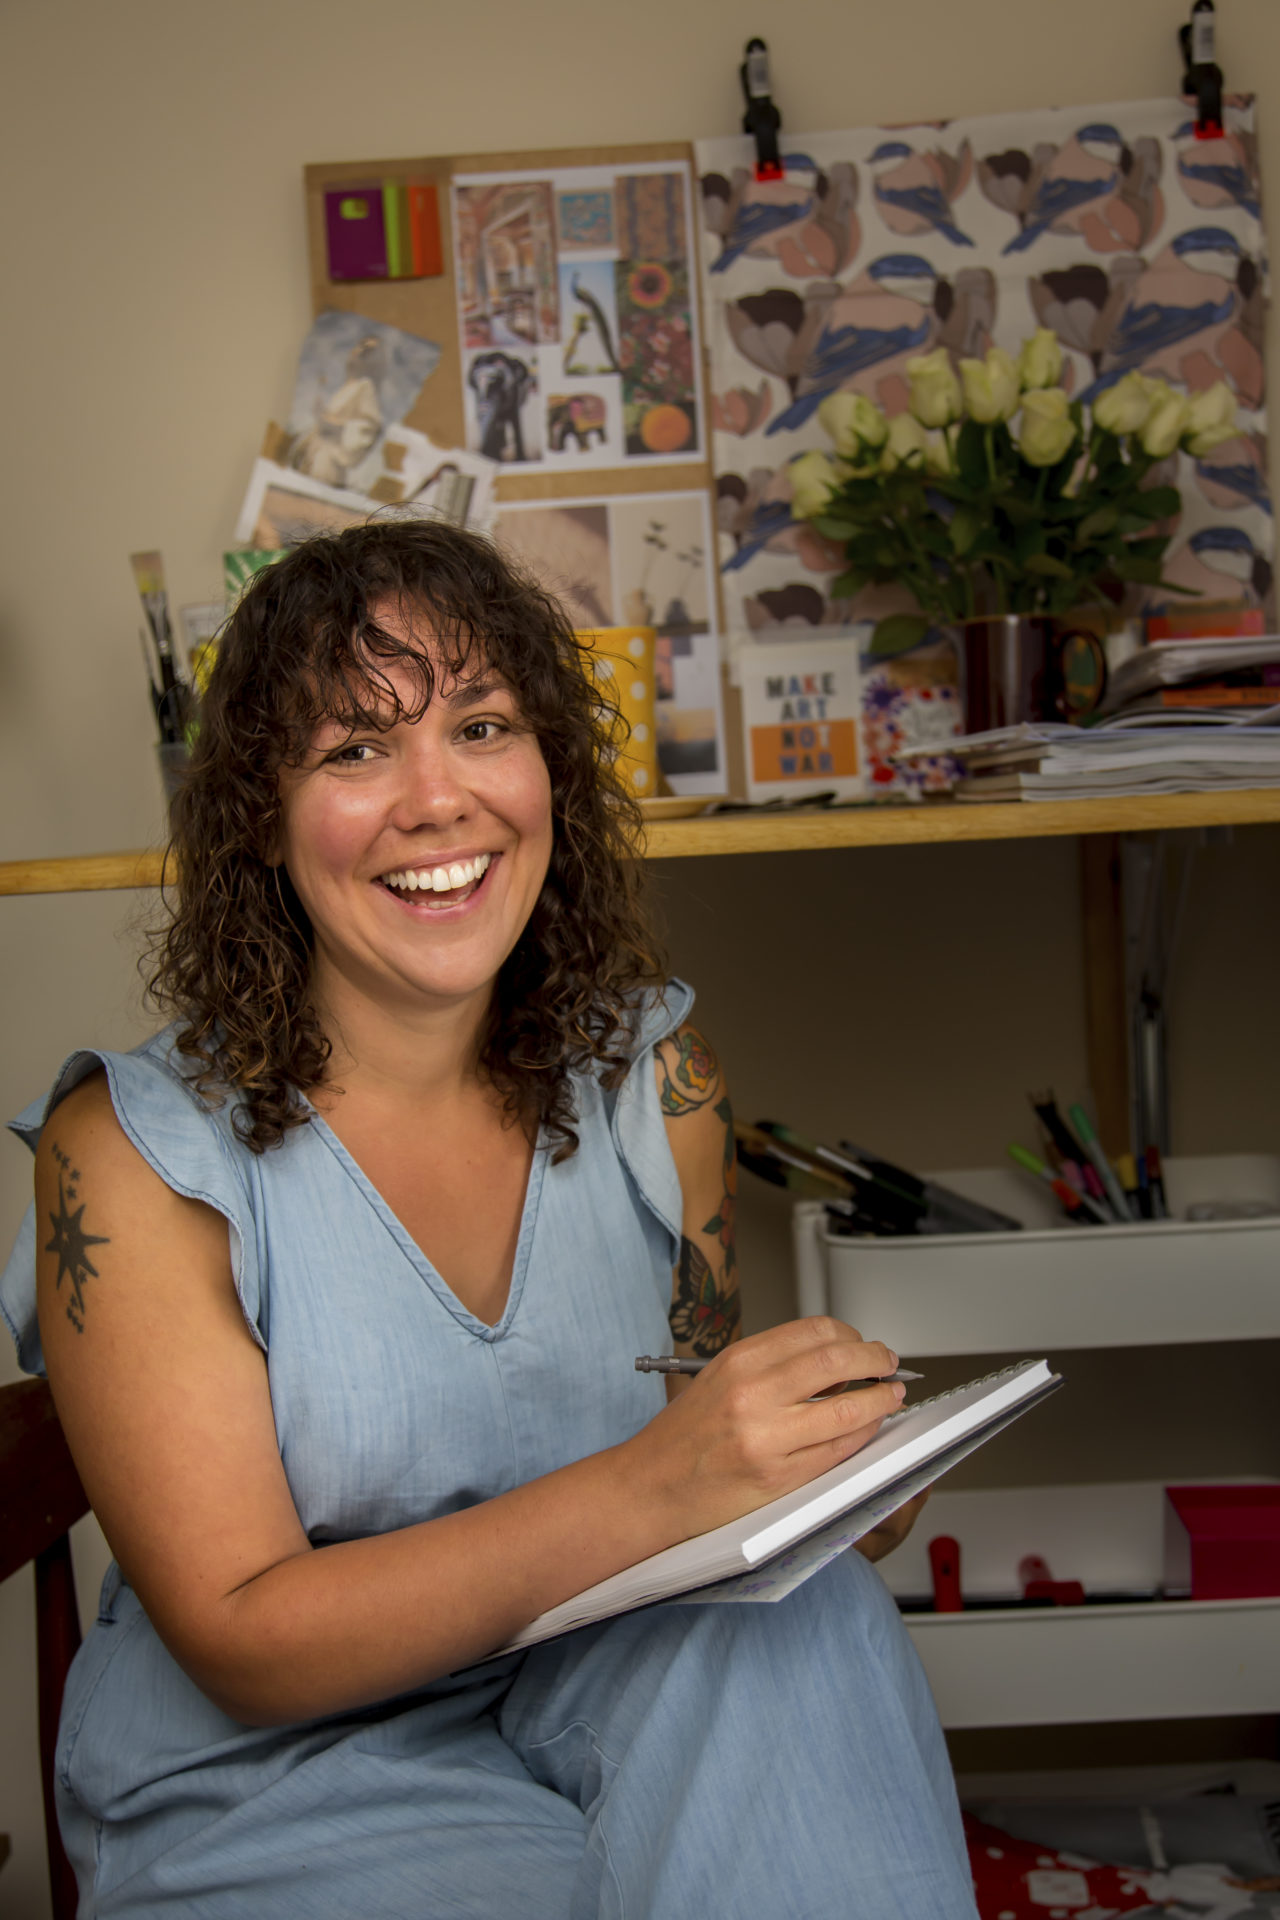 Photo of Sally smiling with sketchbook in hand